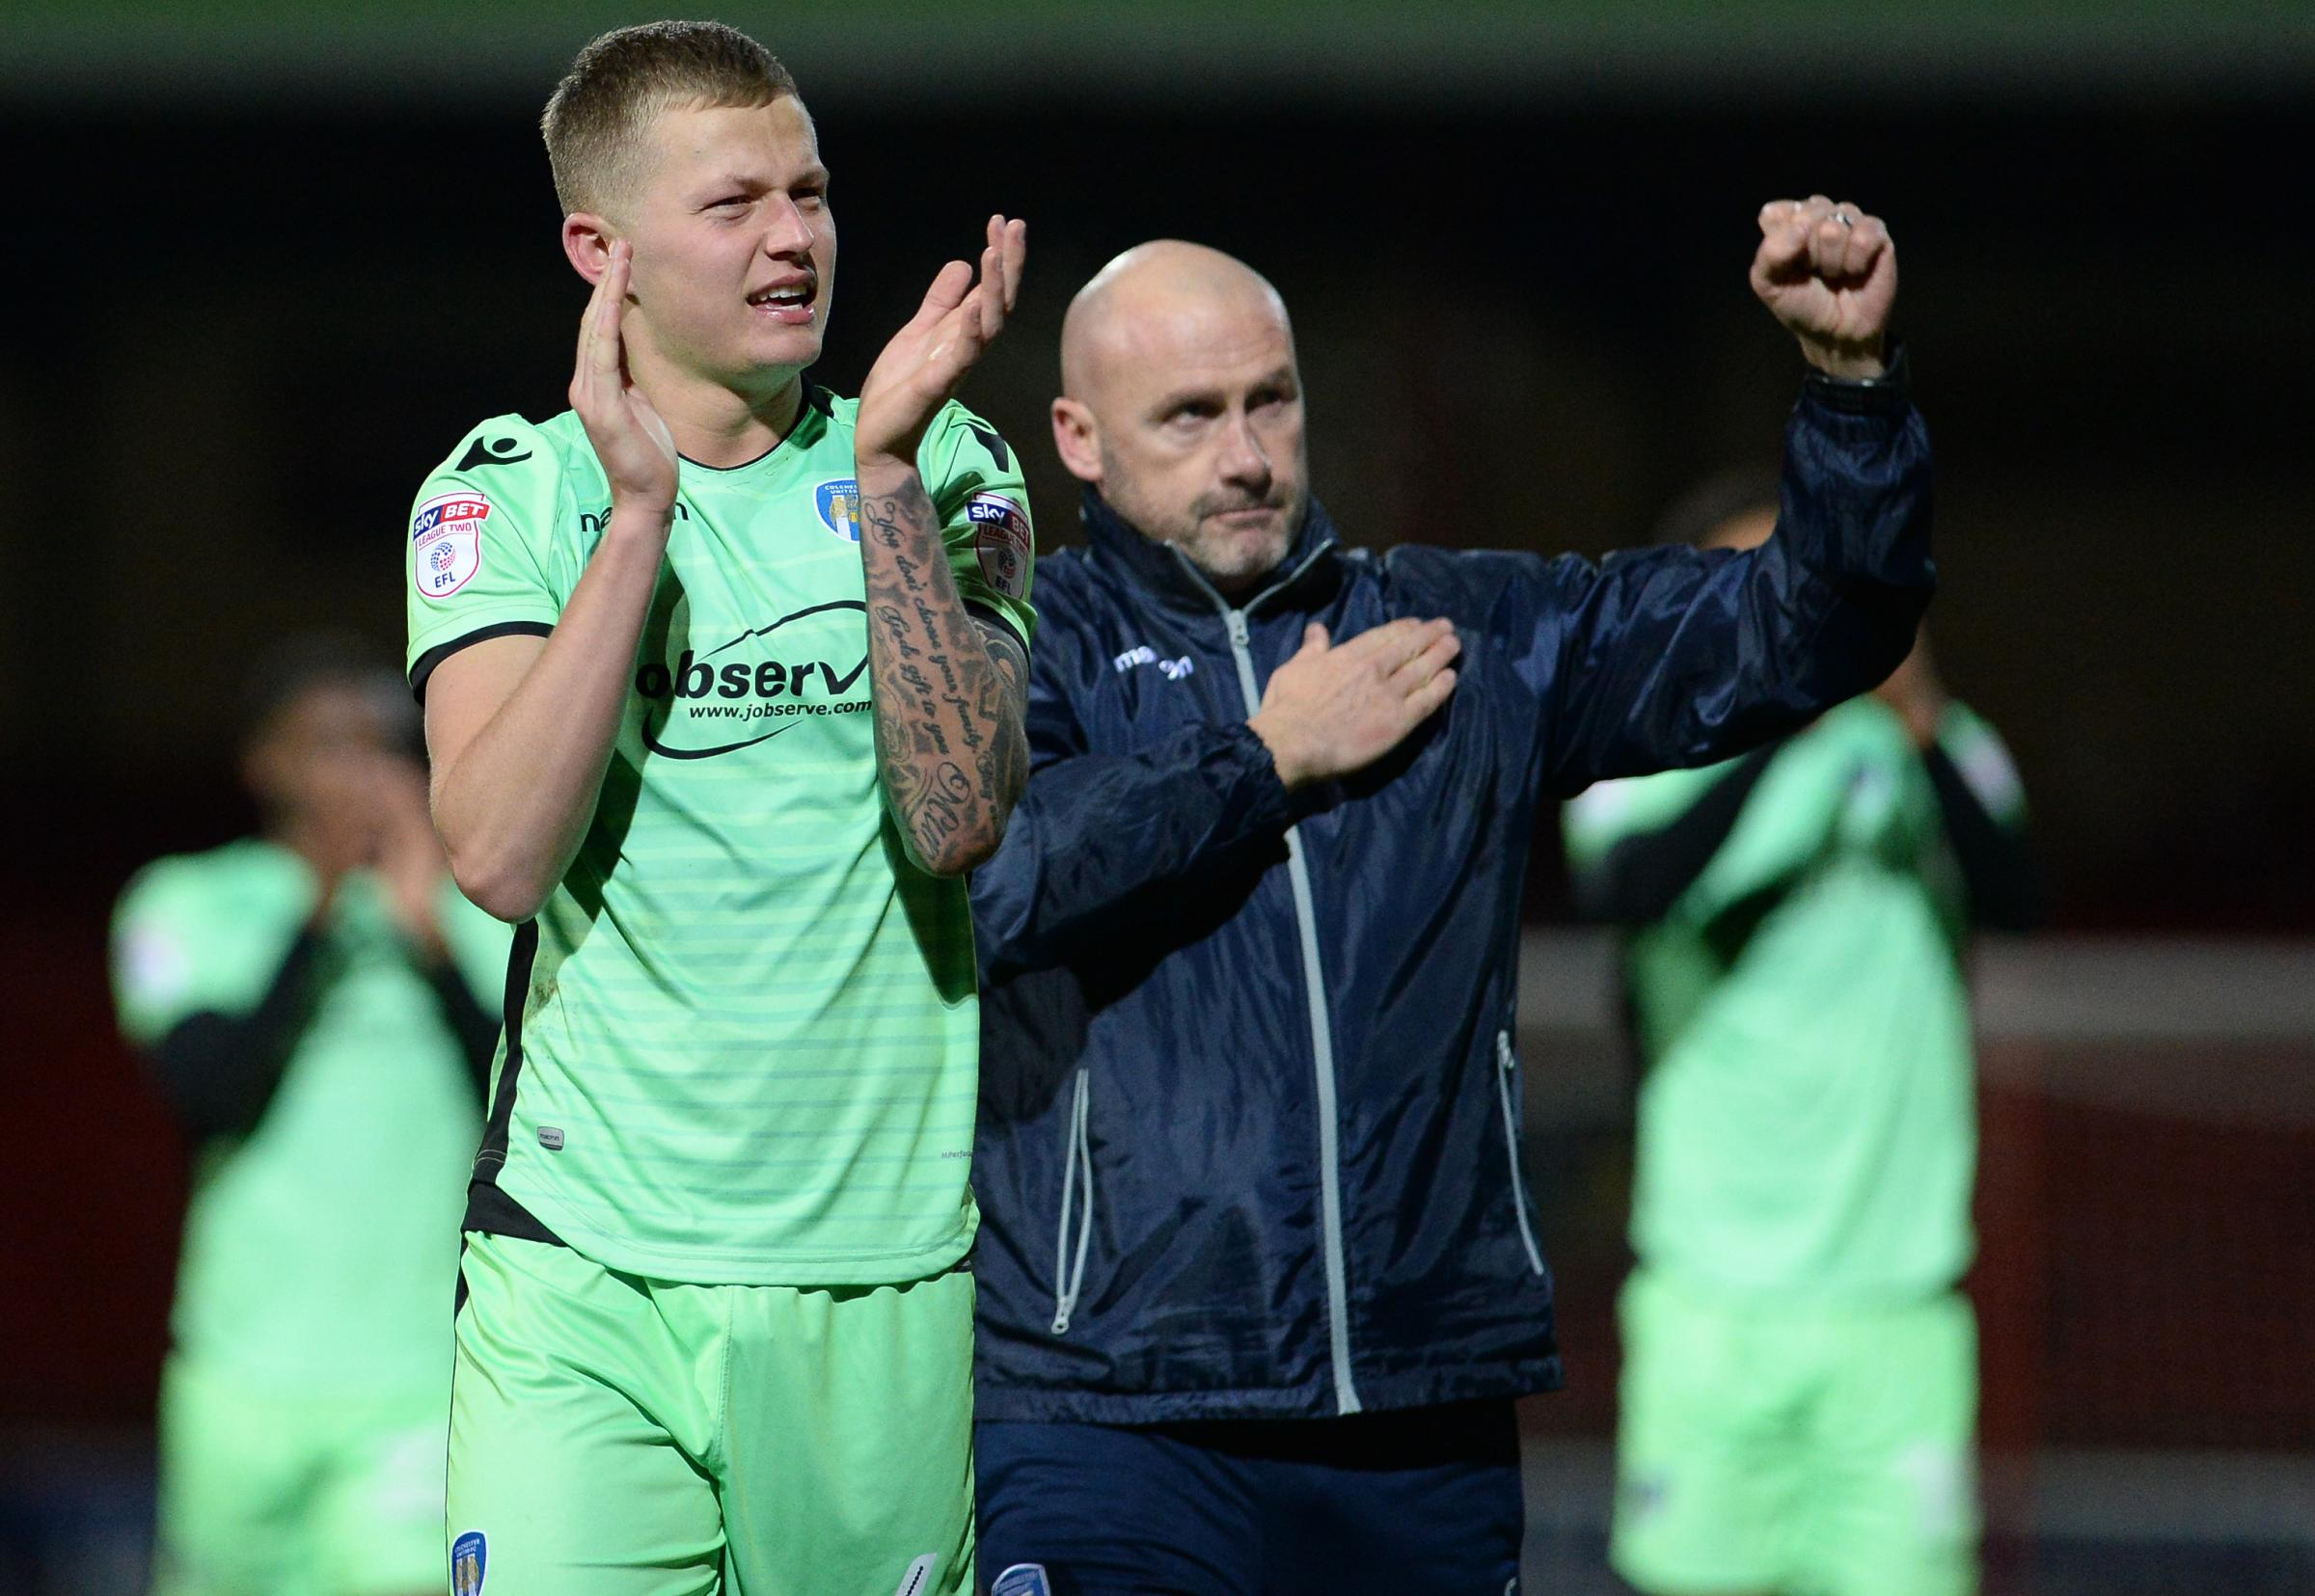 Heartfelt - Colchester United defender Frankie Kent and head coach John McGreal applaud the U's travelling fans after their 3-2 win at Swindon Town Picture: WARREN PAGE